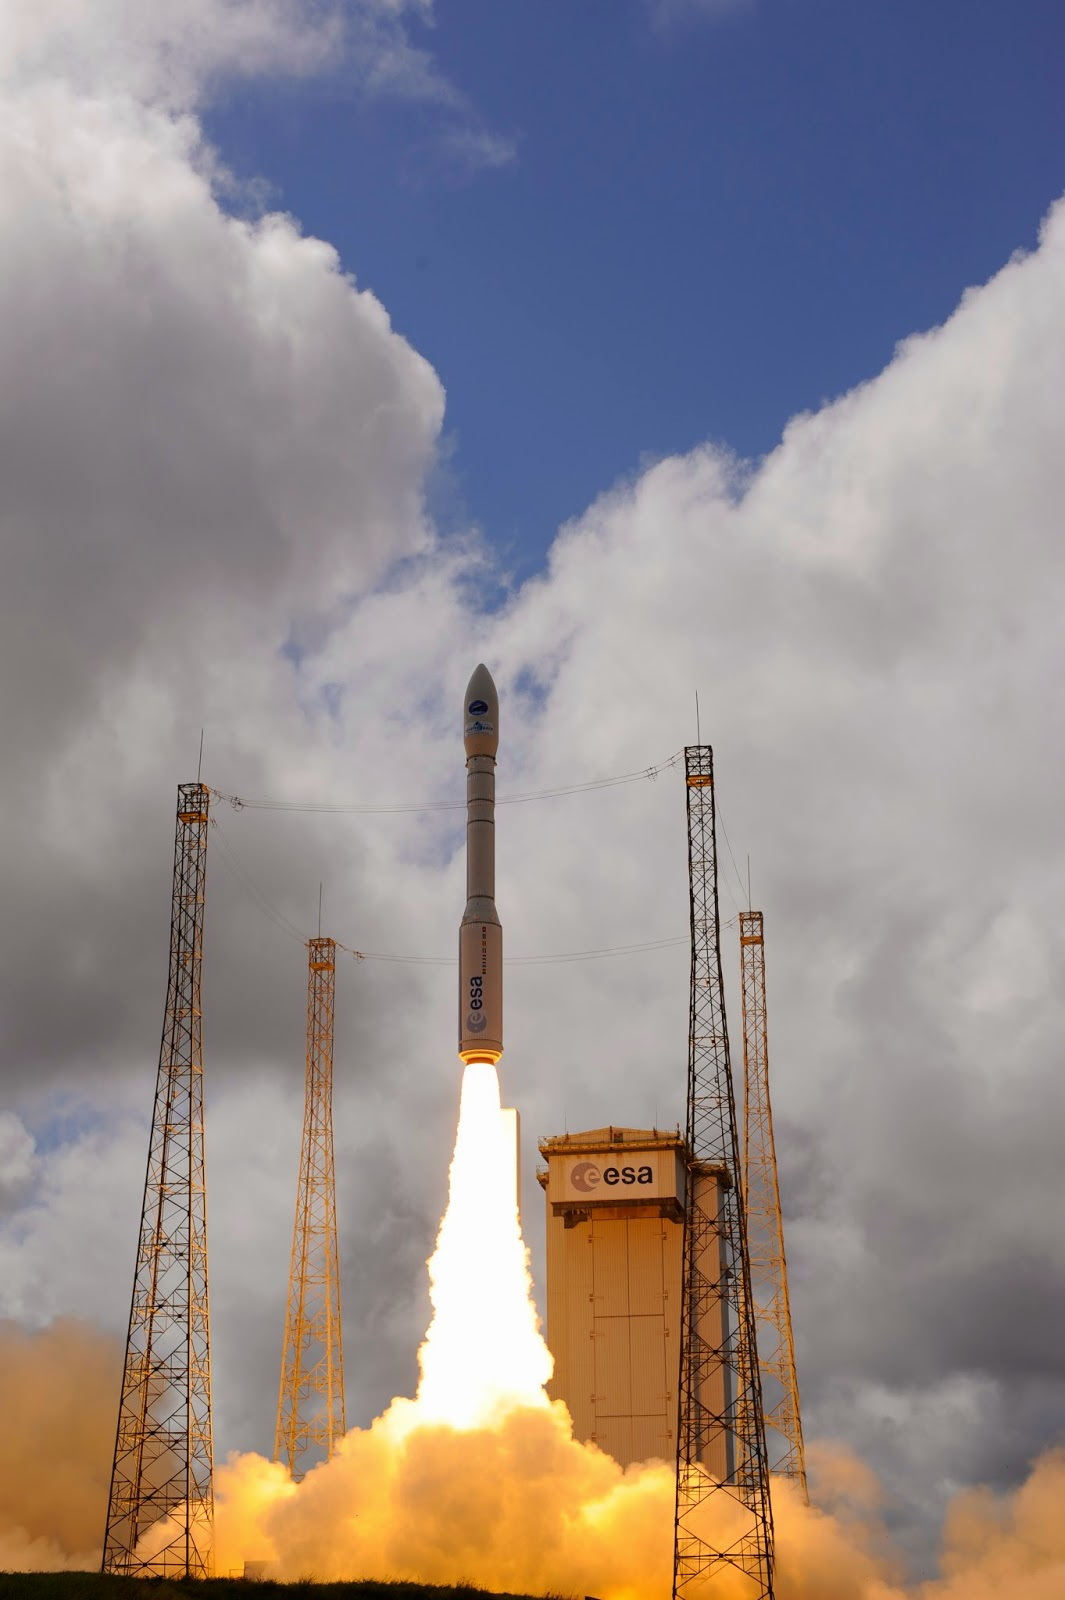 Vega rocket carrying ESA's experimental spaceplane, IXV, lifts off from Europe's Spaceport in Kourou, French Guiana, on 11 February 2015. Credit: ESA–S. Corvaja